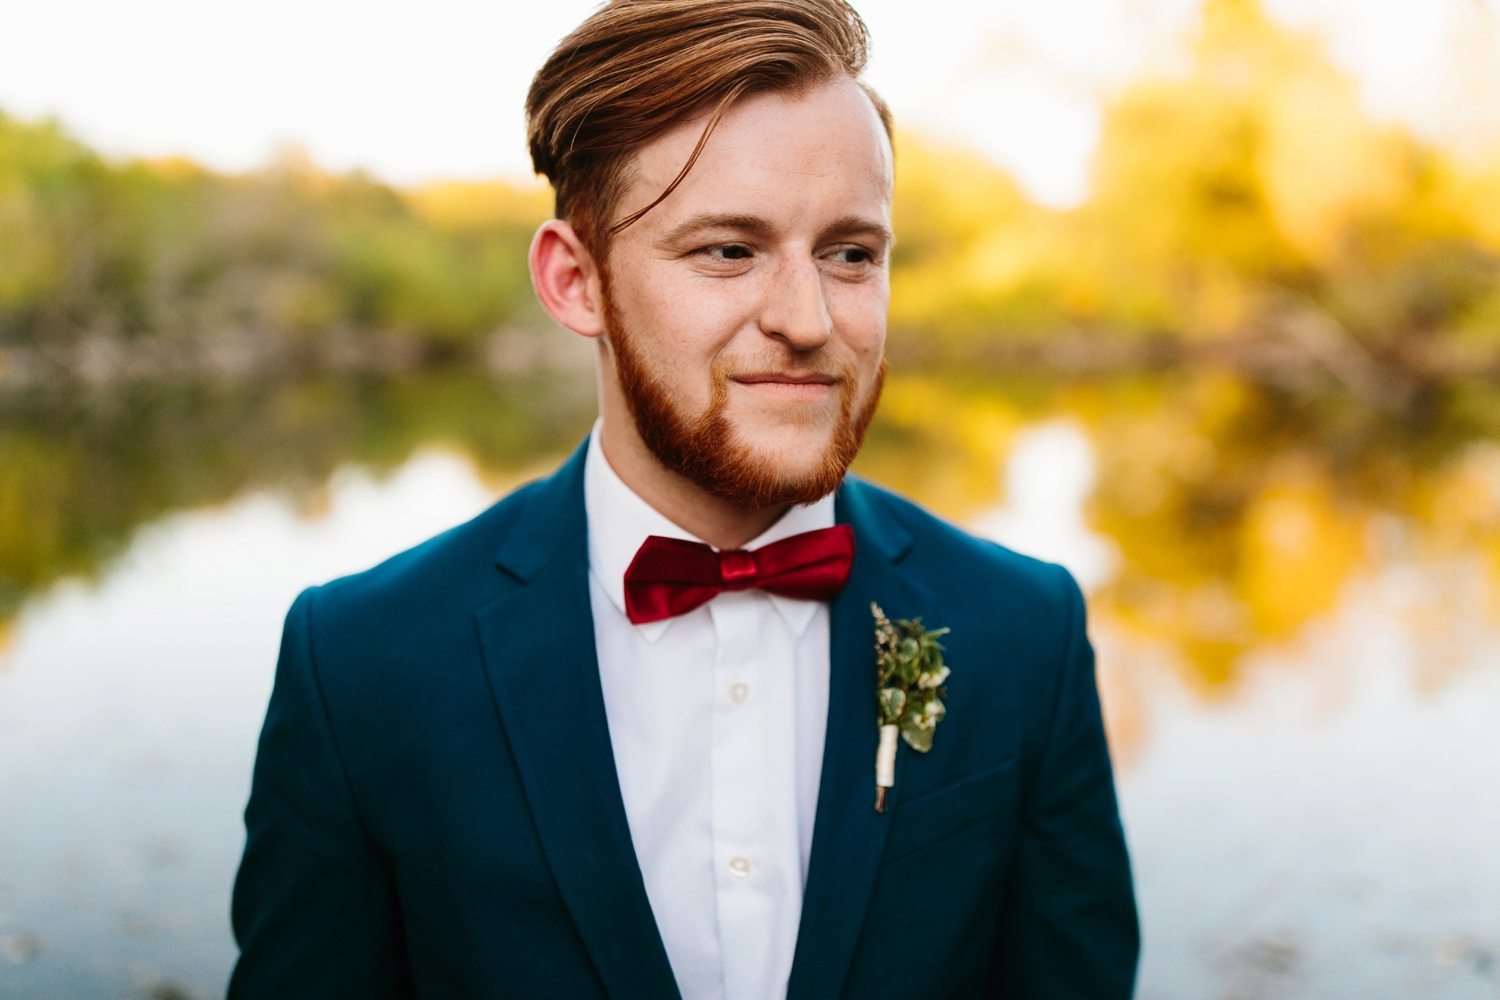 Grant + Lysette | a vibrant, deep burgundy and navy, and mixed metals wedding at Hidden Pines Chapel by North Texas Wedding Photographer Rachel Meagan Photography 237